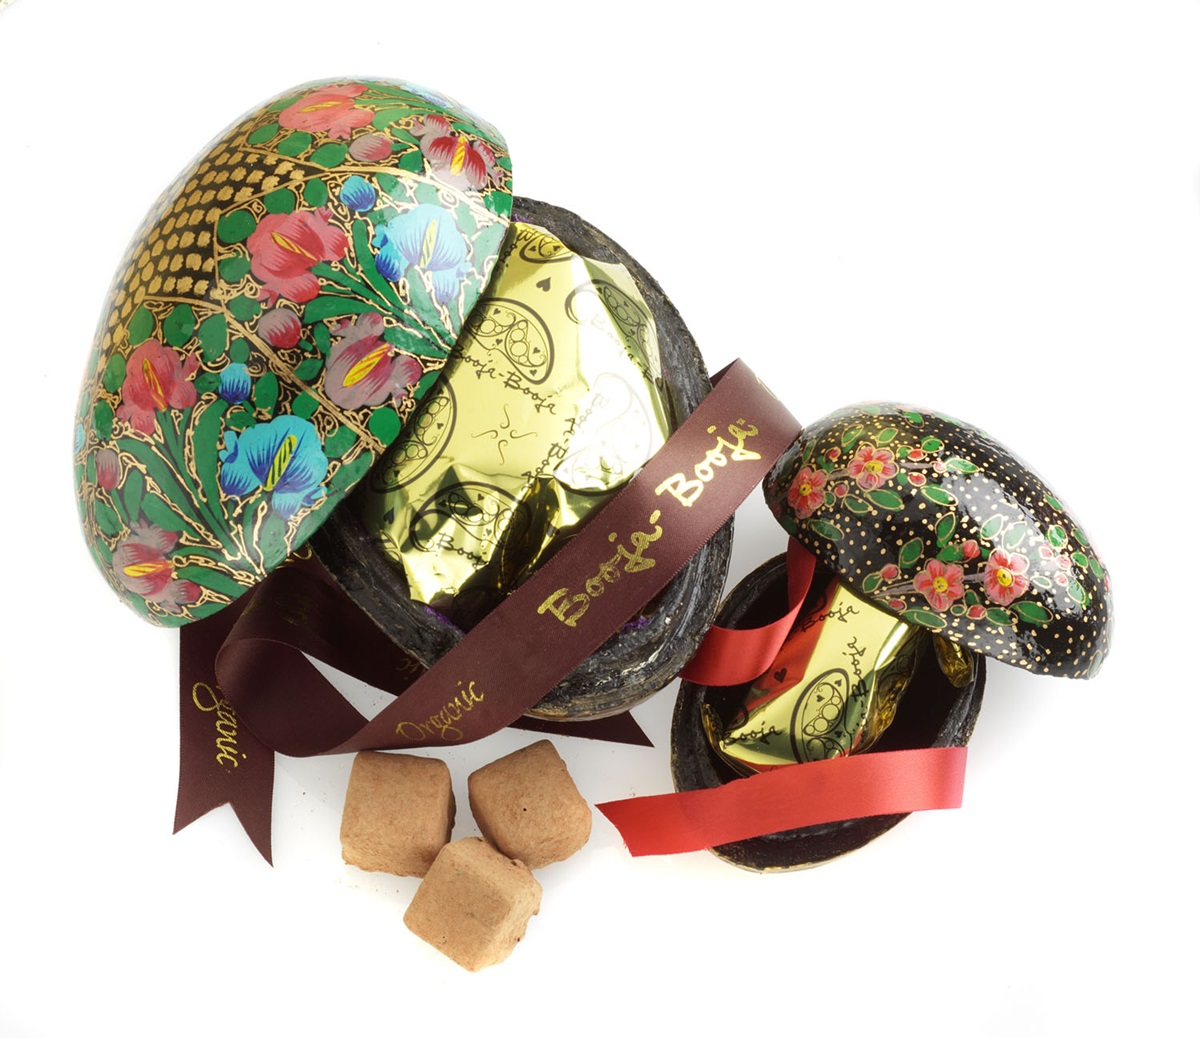 Dairy-Free Easter Chocolate in Australia, the UK and the rest of Europe - most options are vegan and gluten-free, some soy-free and nut-free, too! Pictured: Booja Booja Luxury Eggs